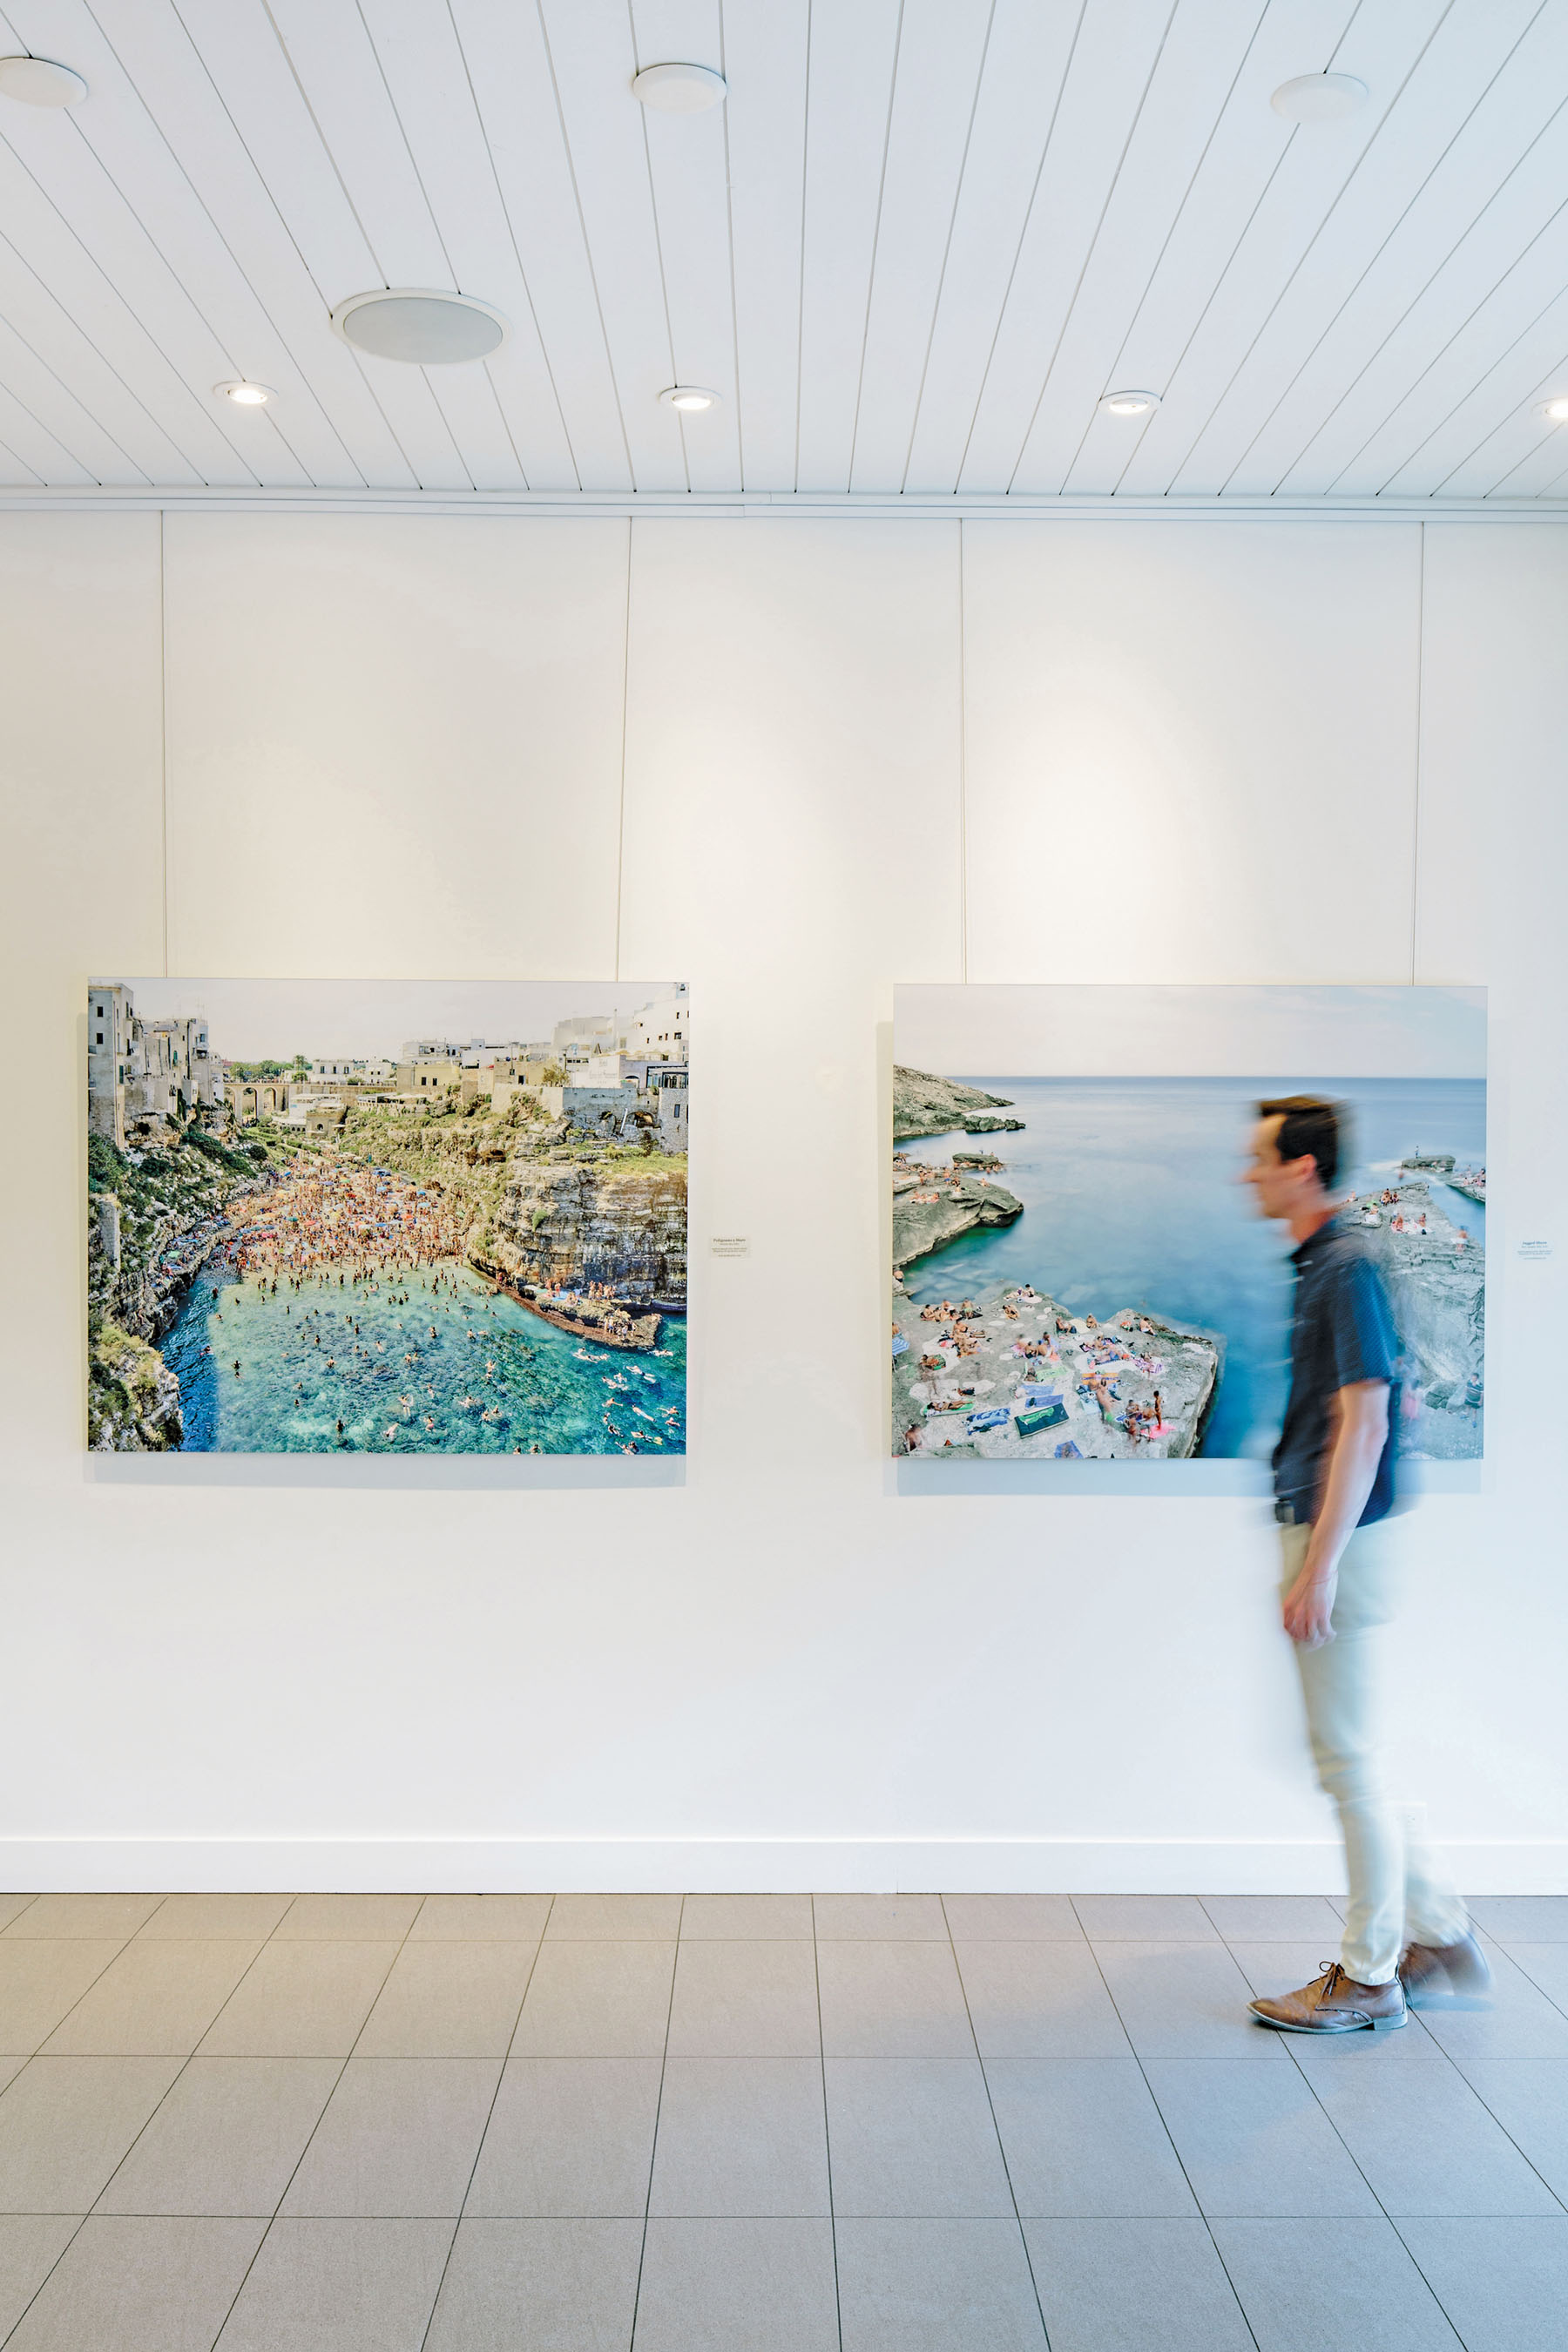 The on-site art gallery enhances the visitor experience for the wine aficionados